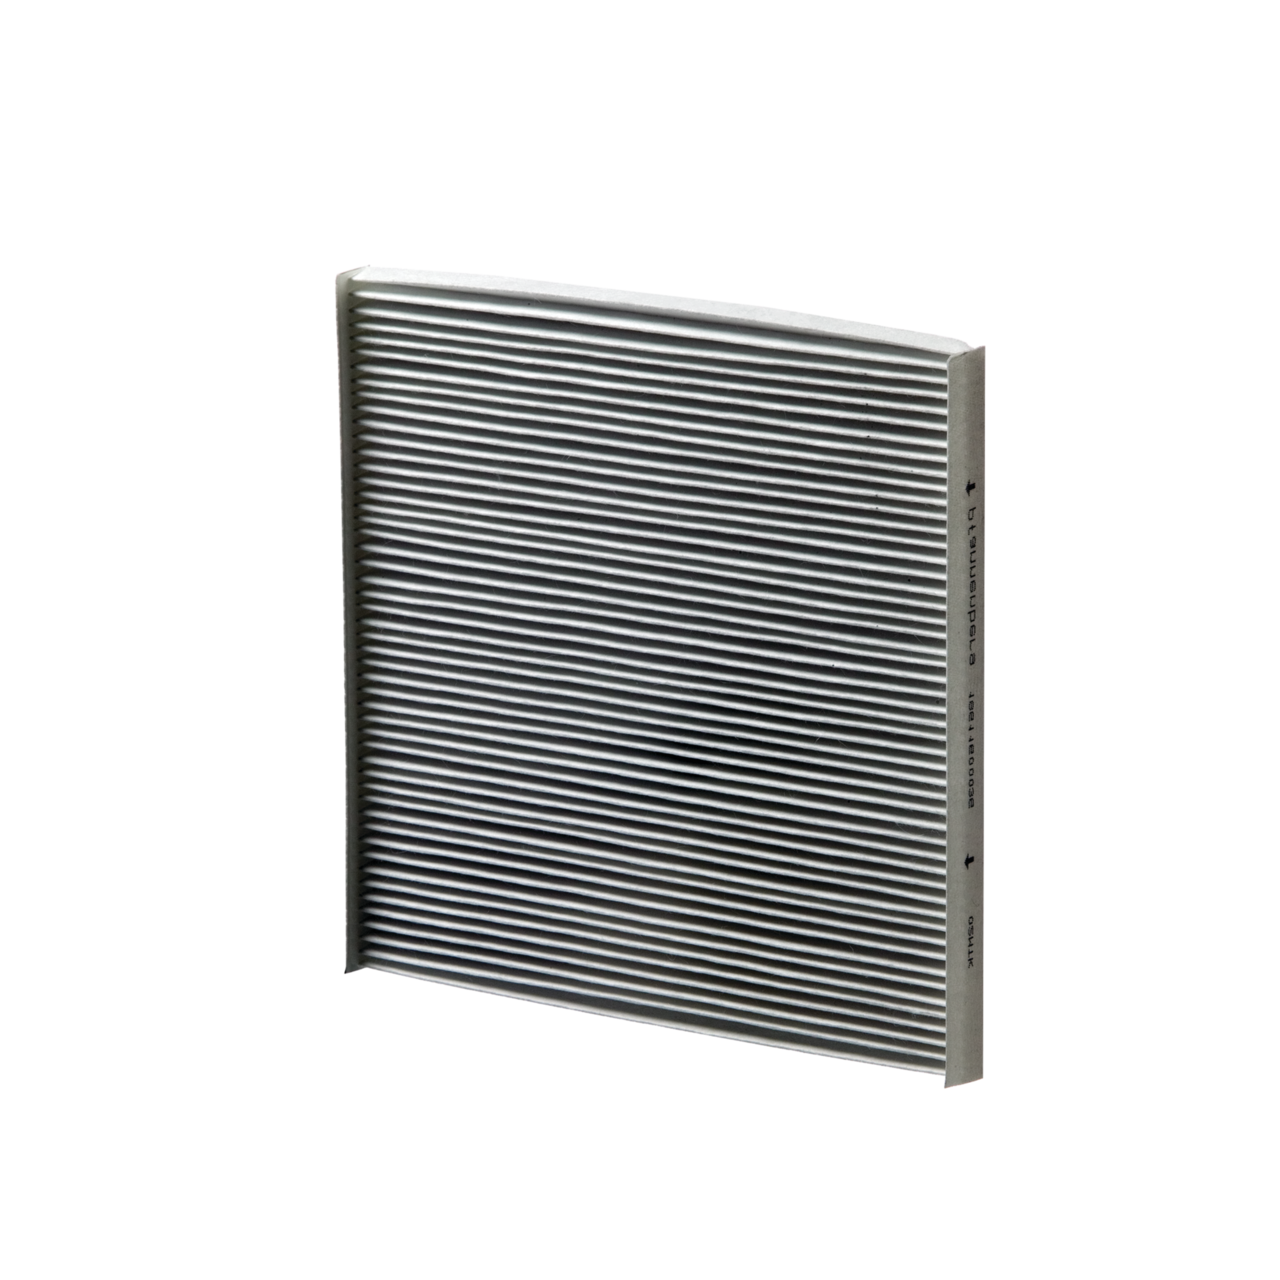 Image for Fluted filter IP 55 from Schroff - North America